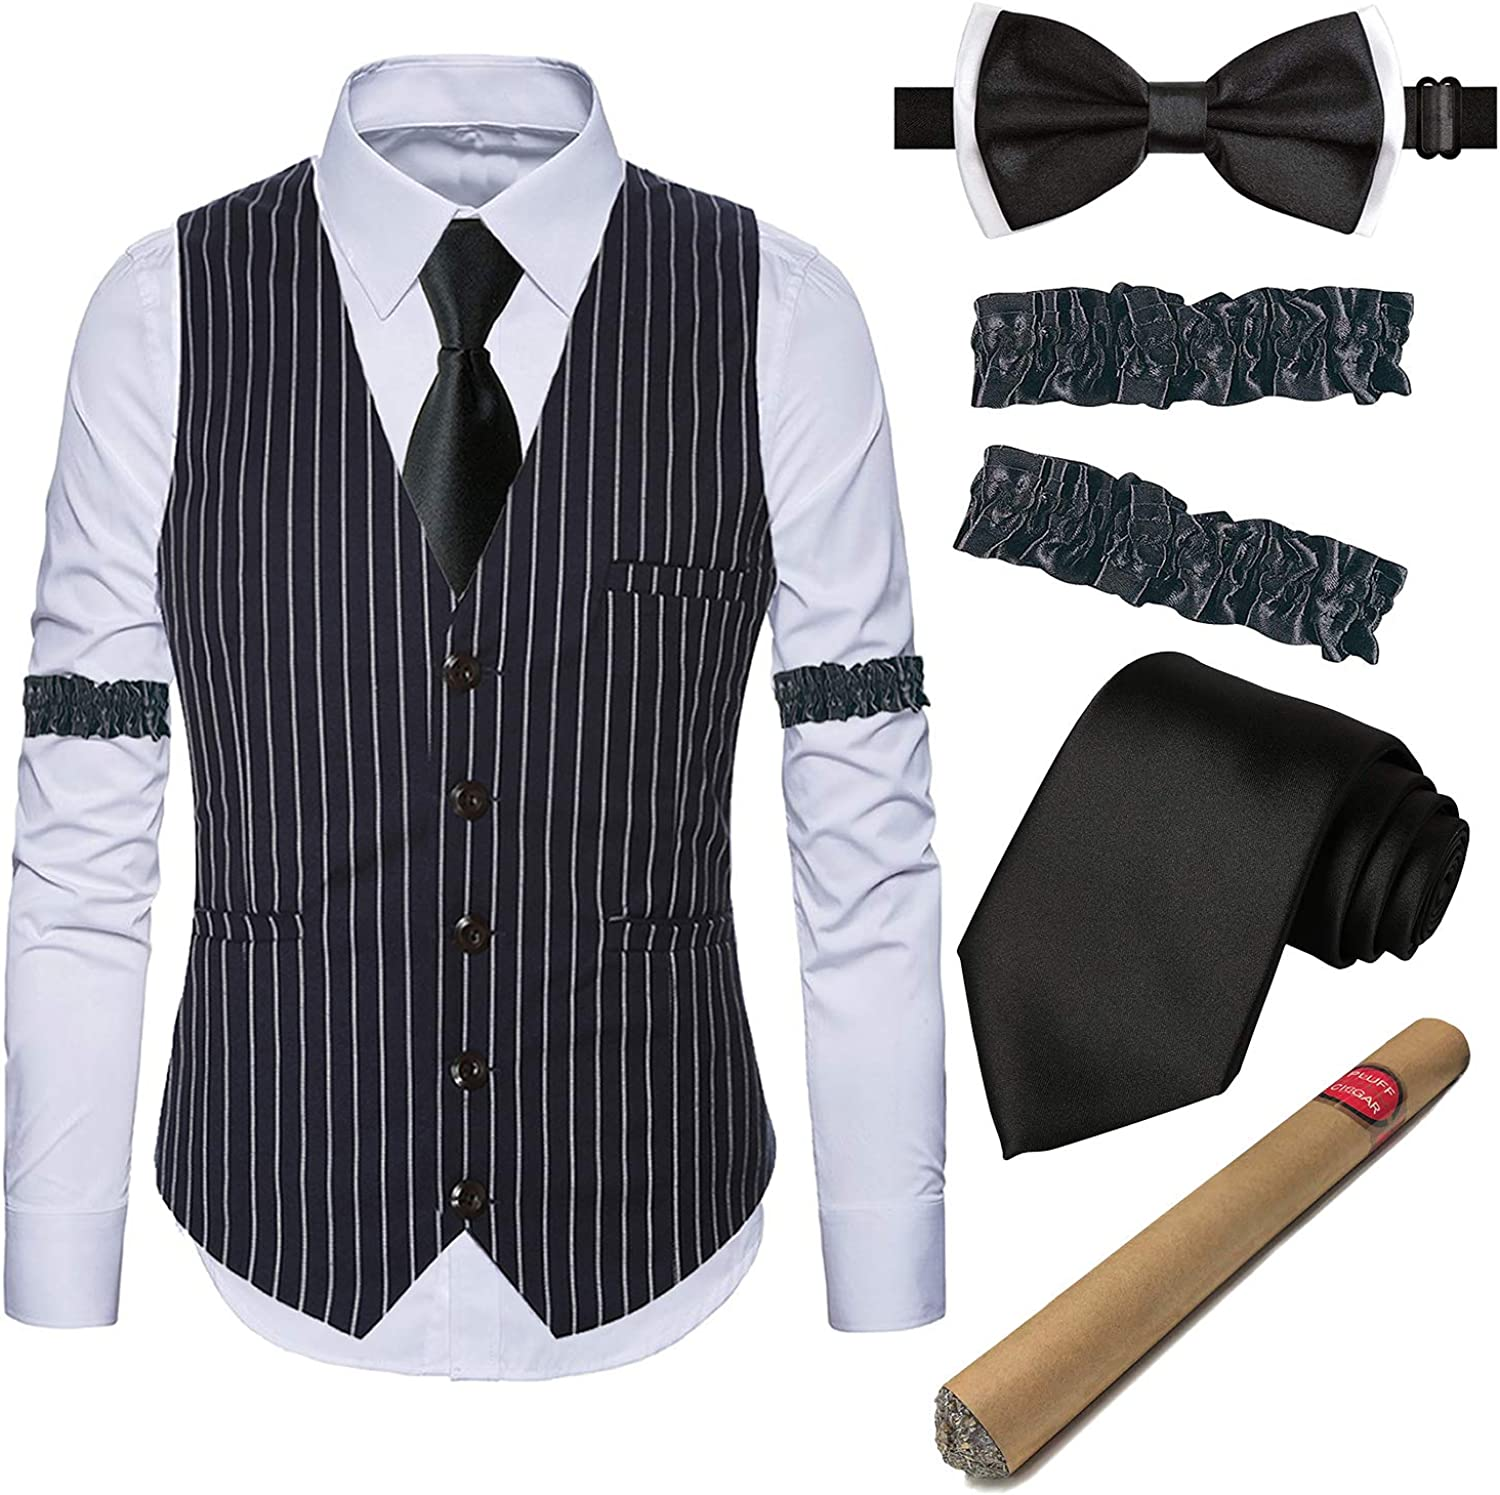 1920s Gatsby Costume Accessories for Mens Gangster Stripe Vest,White Dress Suit Shirt /& Armbands,Toy Fake Cigar,Tie,Pre-Tie